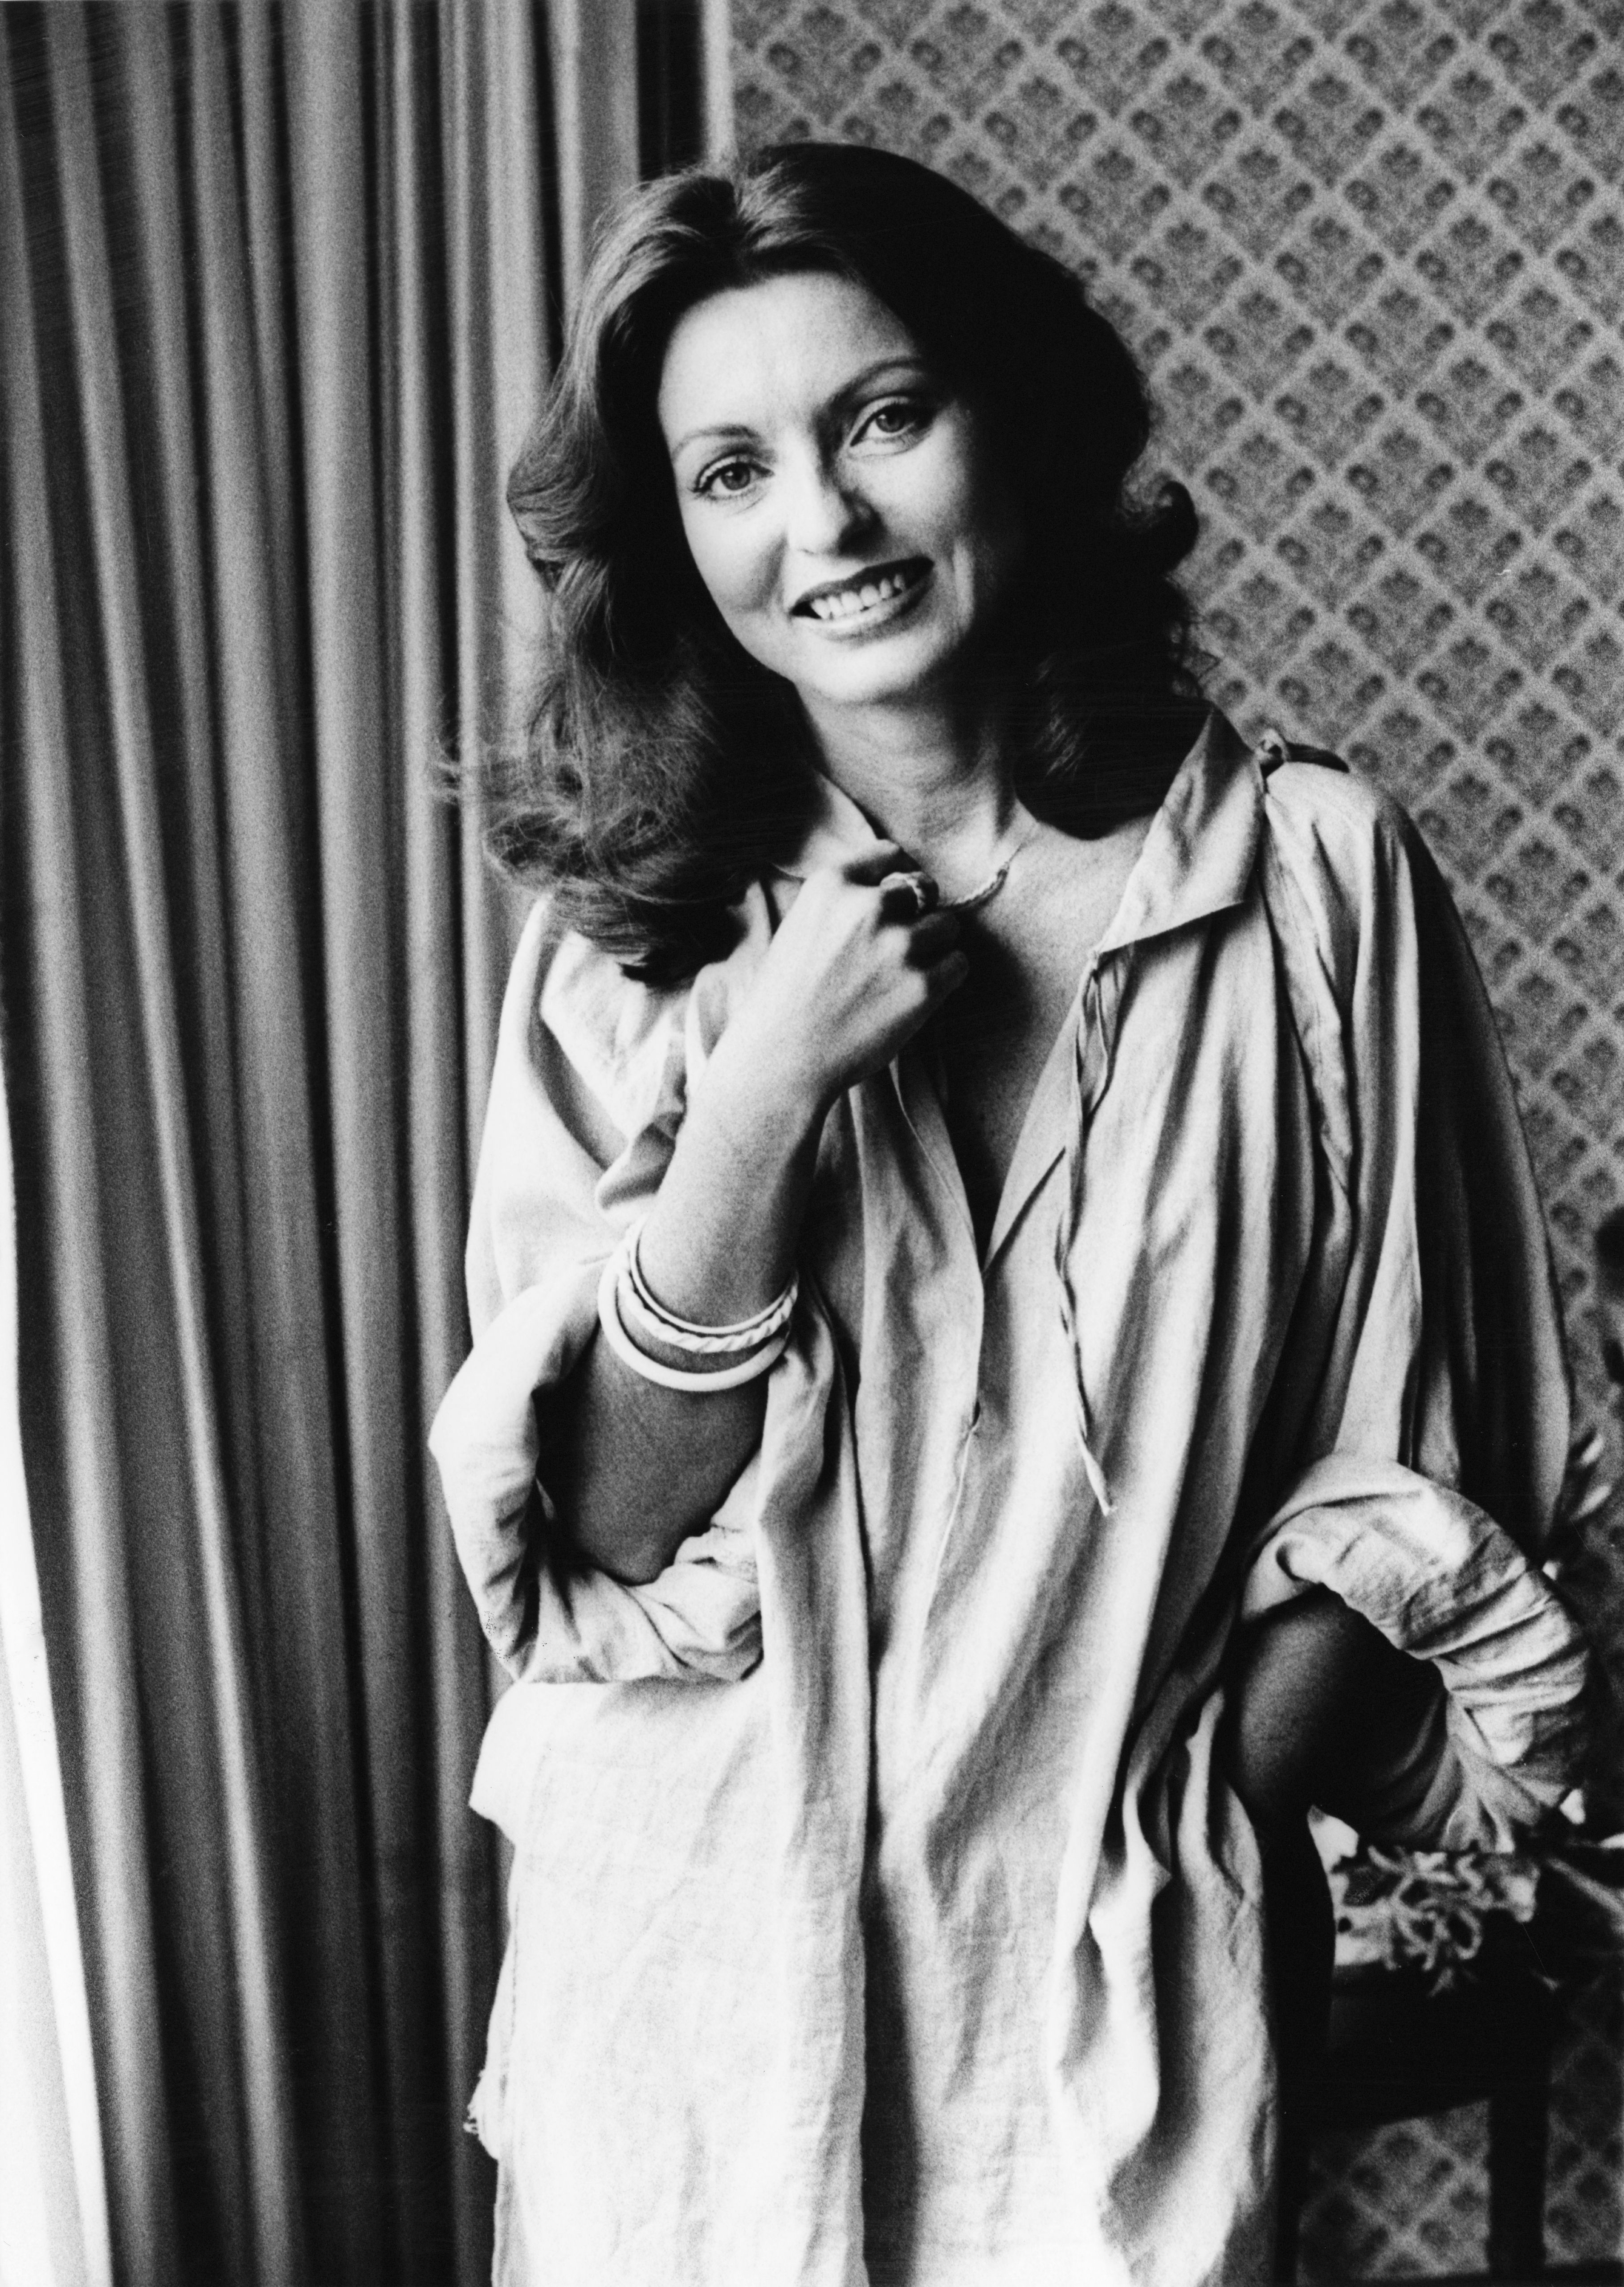 L'actrice française Marie-France Pisier (1944-2011), 31 août 1977. | Photo : Getty Images